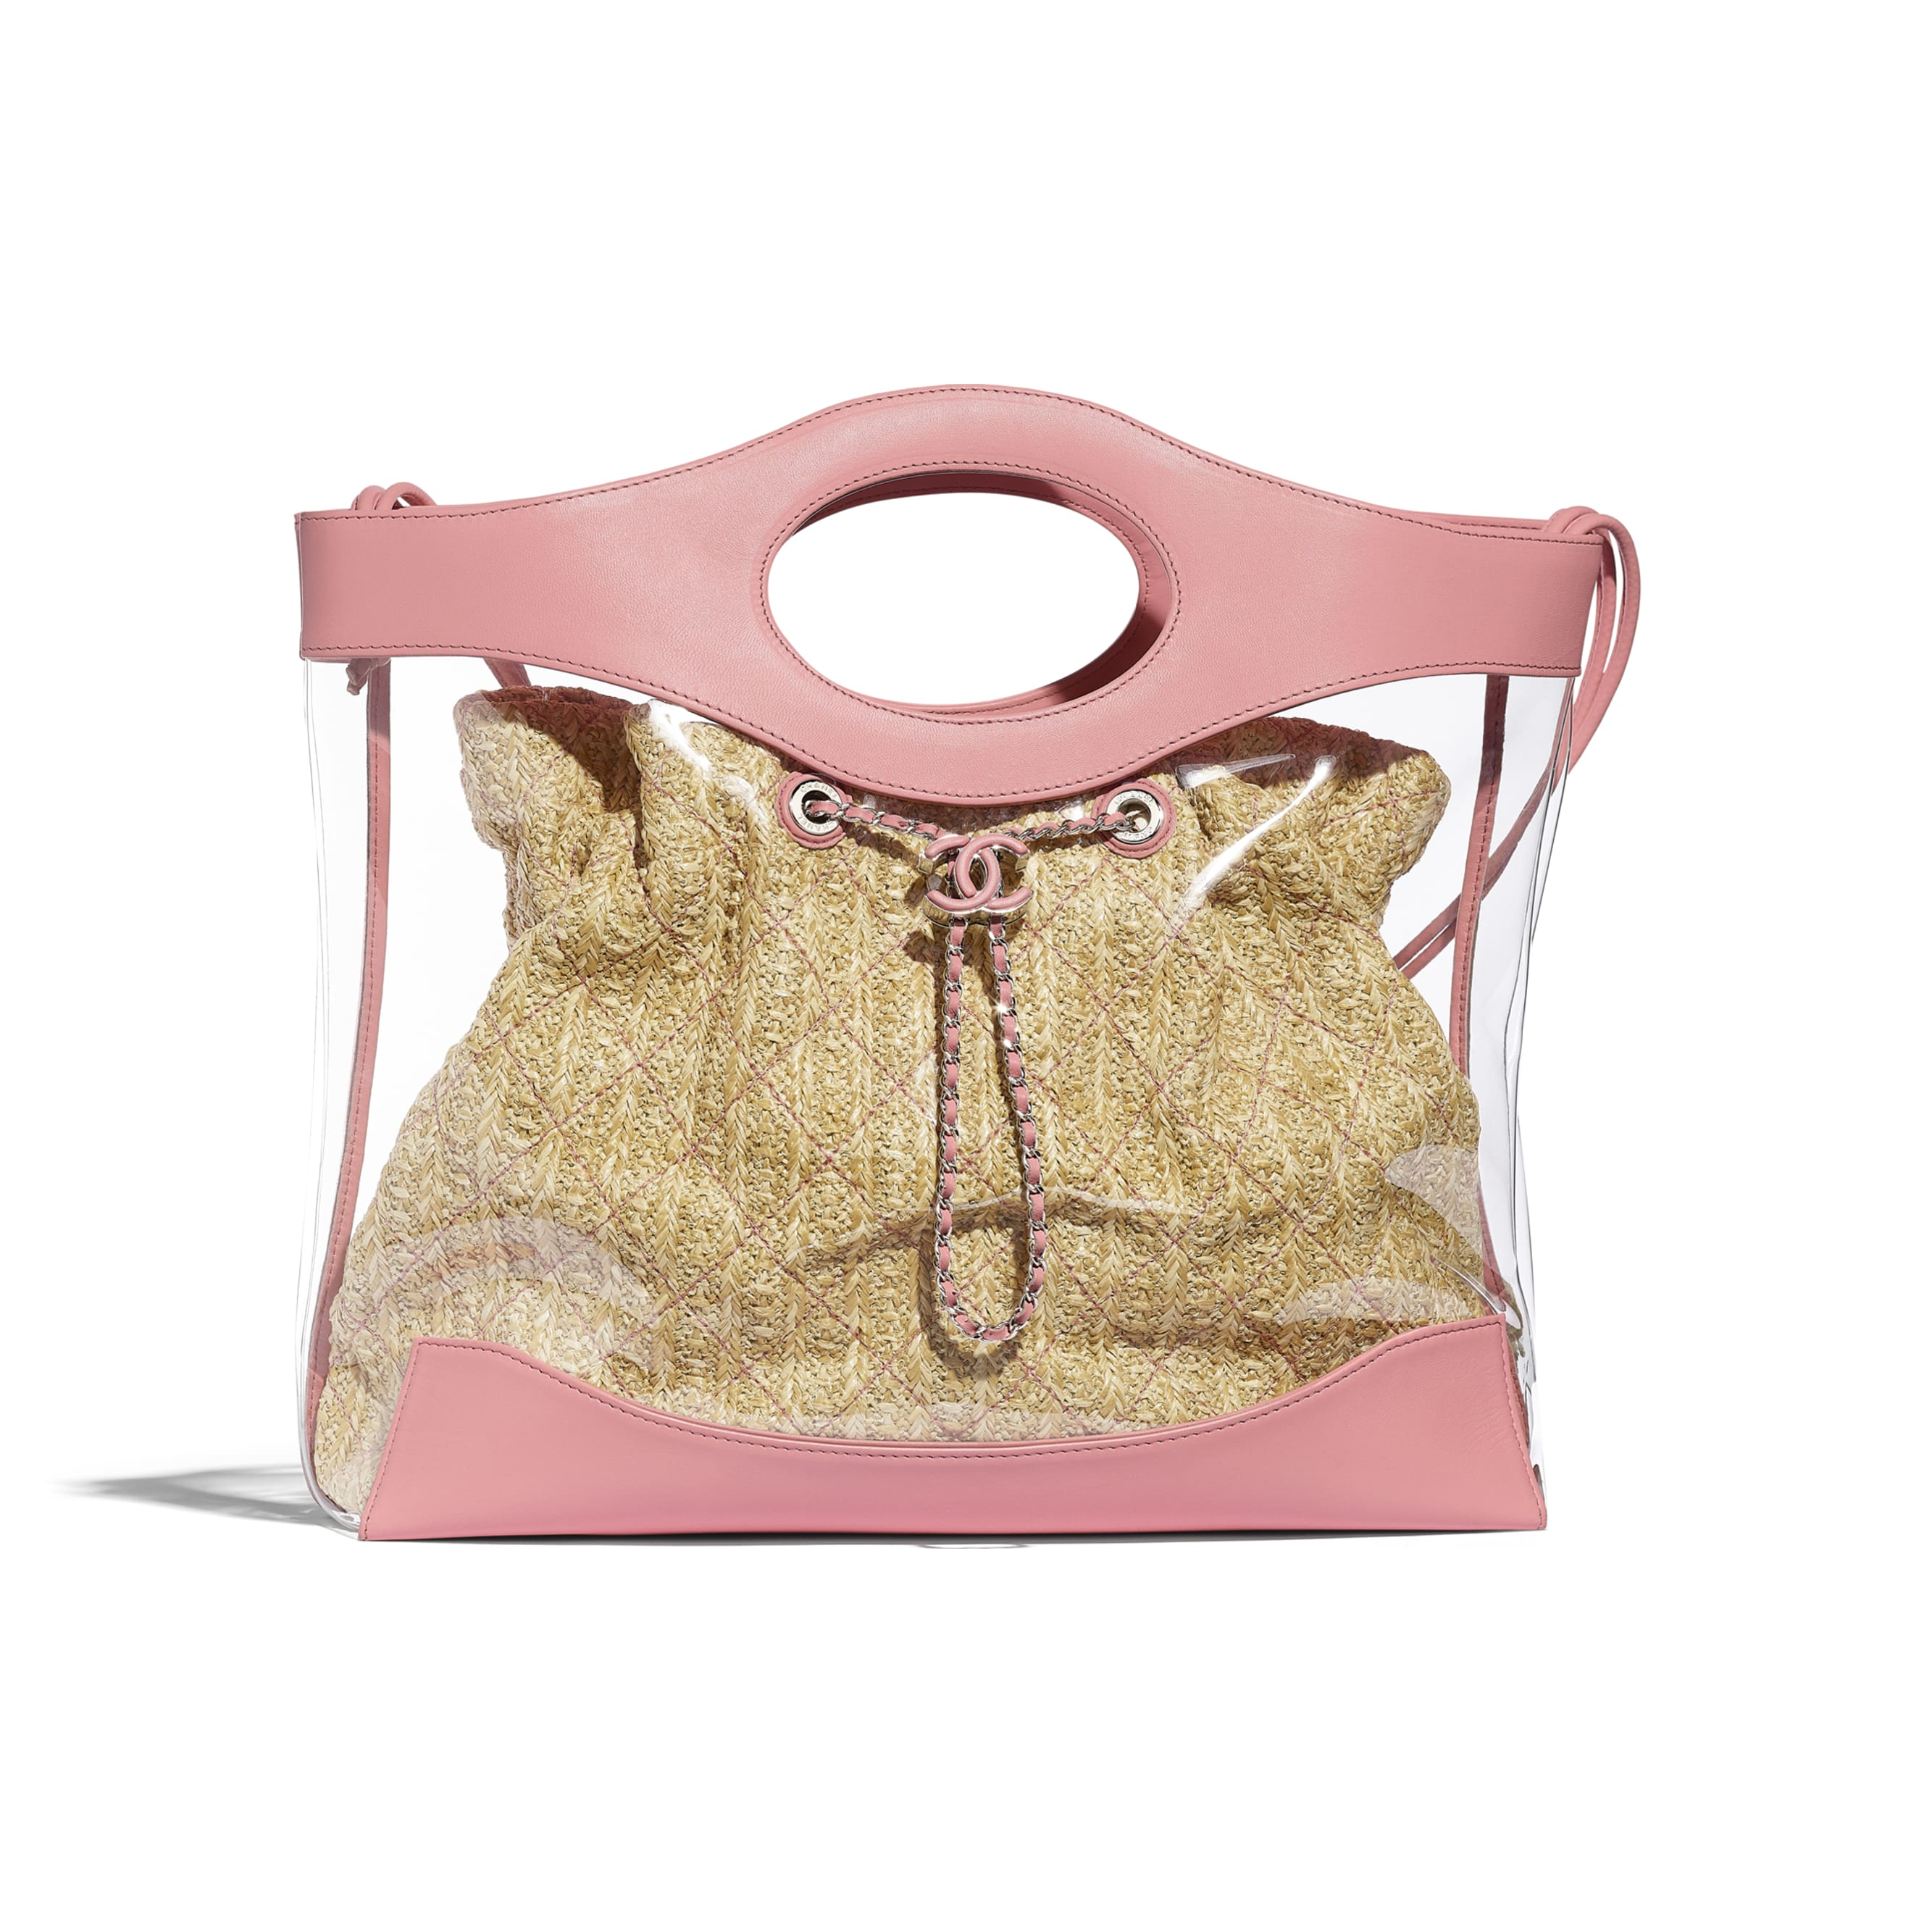 CHANEL 31 Shopping Bag - Pink - PVC, Calfskin & Silver-Tone Metal - Default view - see standard sized version